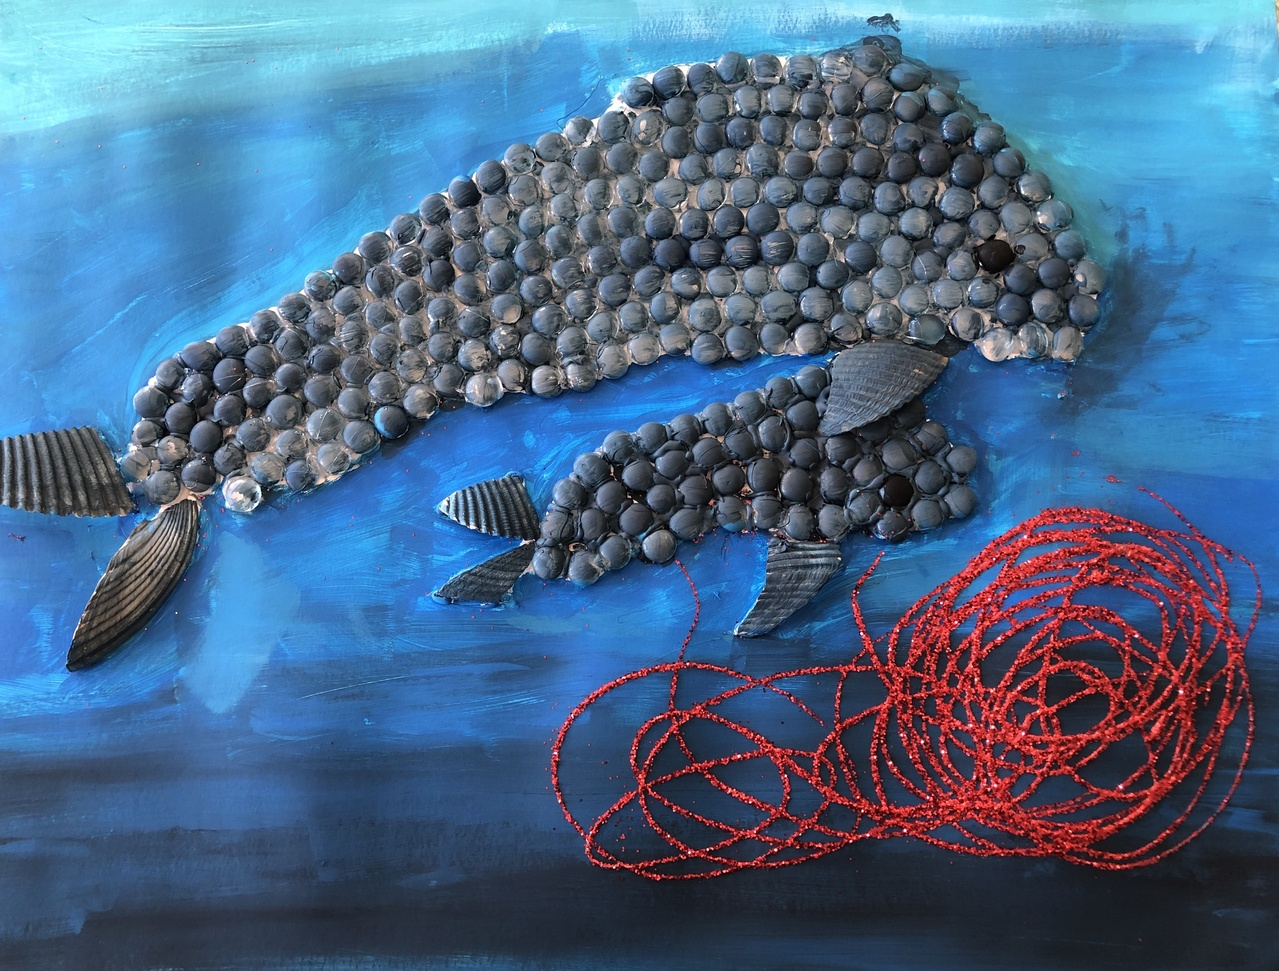 HM 3-5 2-D_ Chloe G., grade 5, FL, _Loreta and Timmy the Blue Whales Eating Krill_.jpg